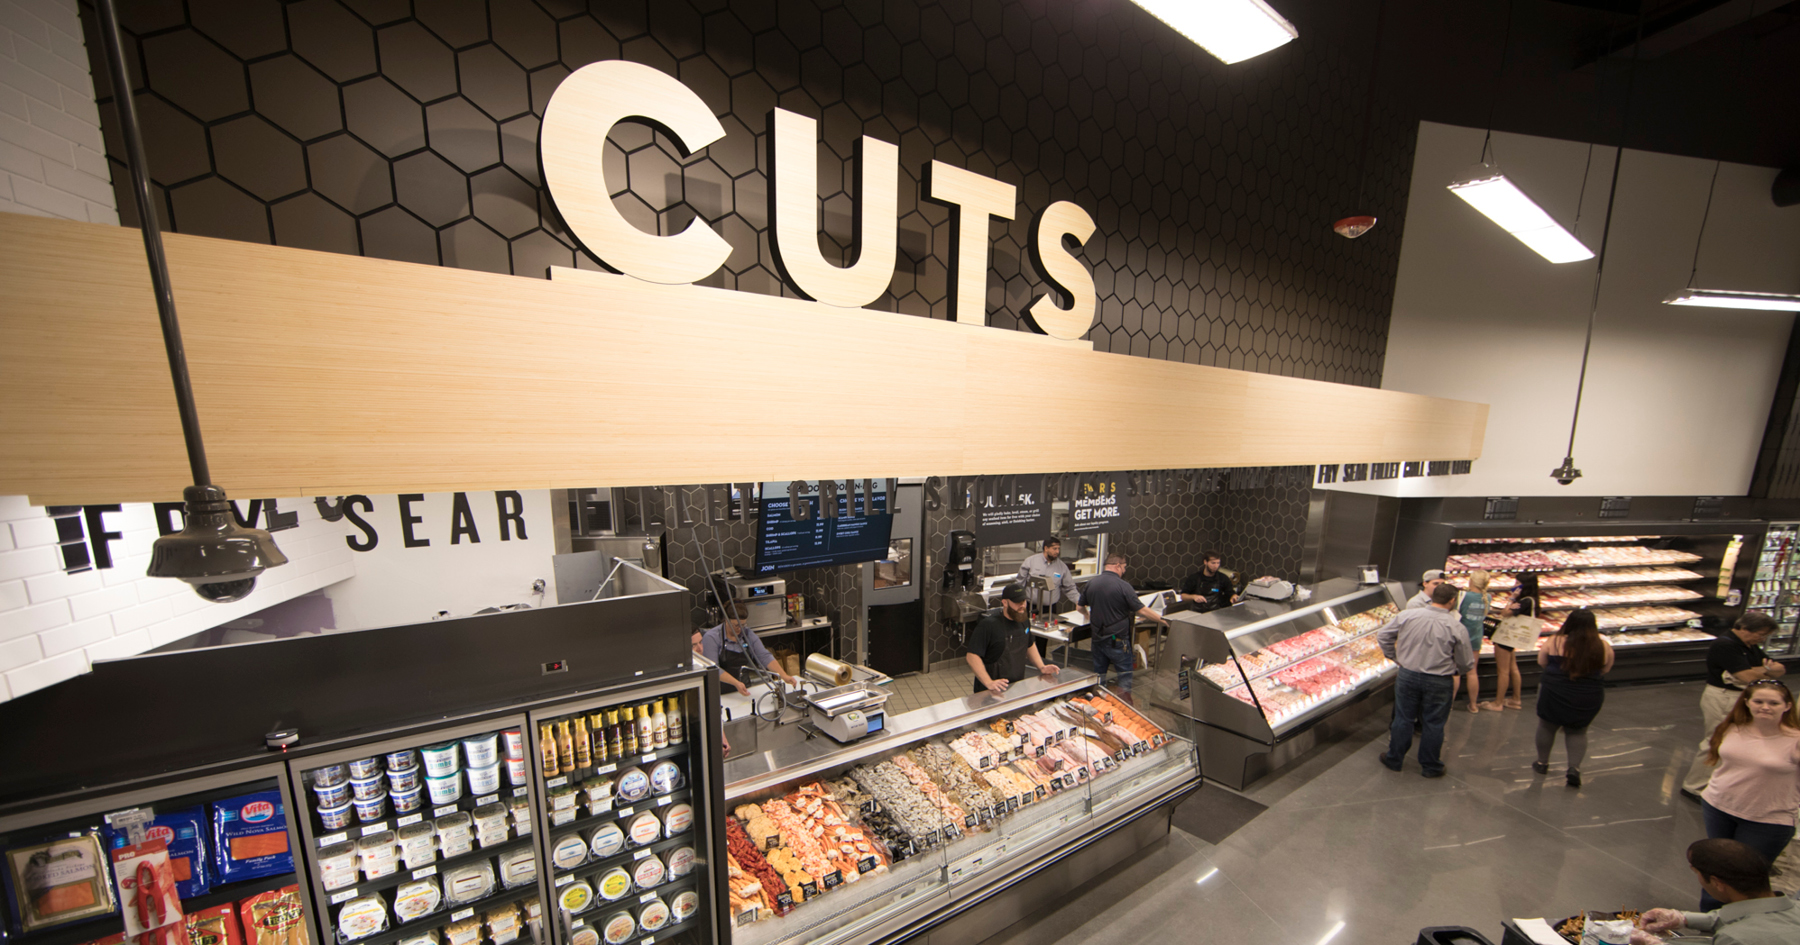 New Stores, Pricing Drive Robust Sales at Publix in Q2